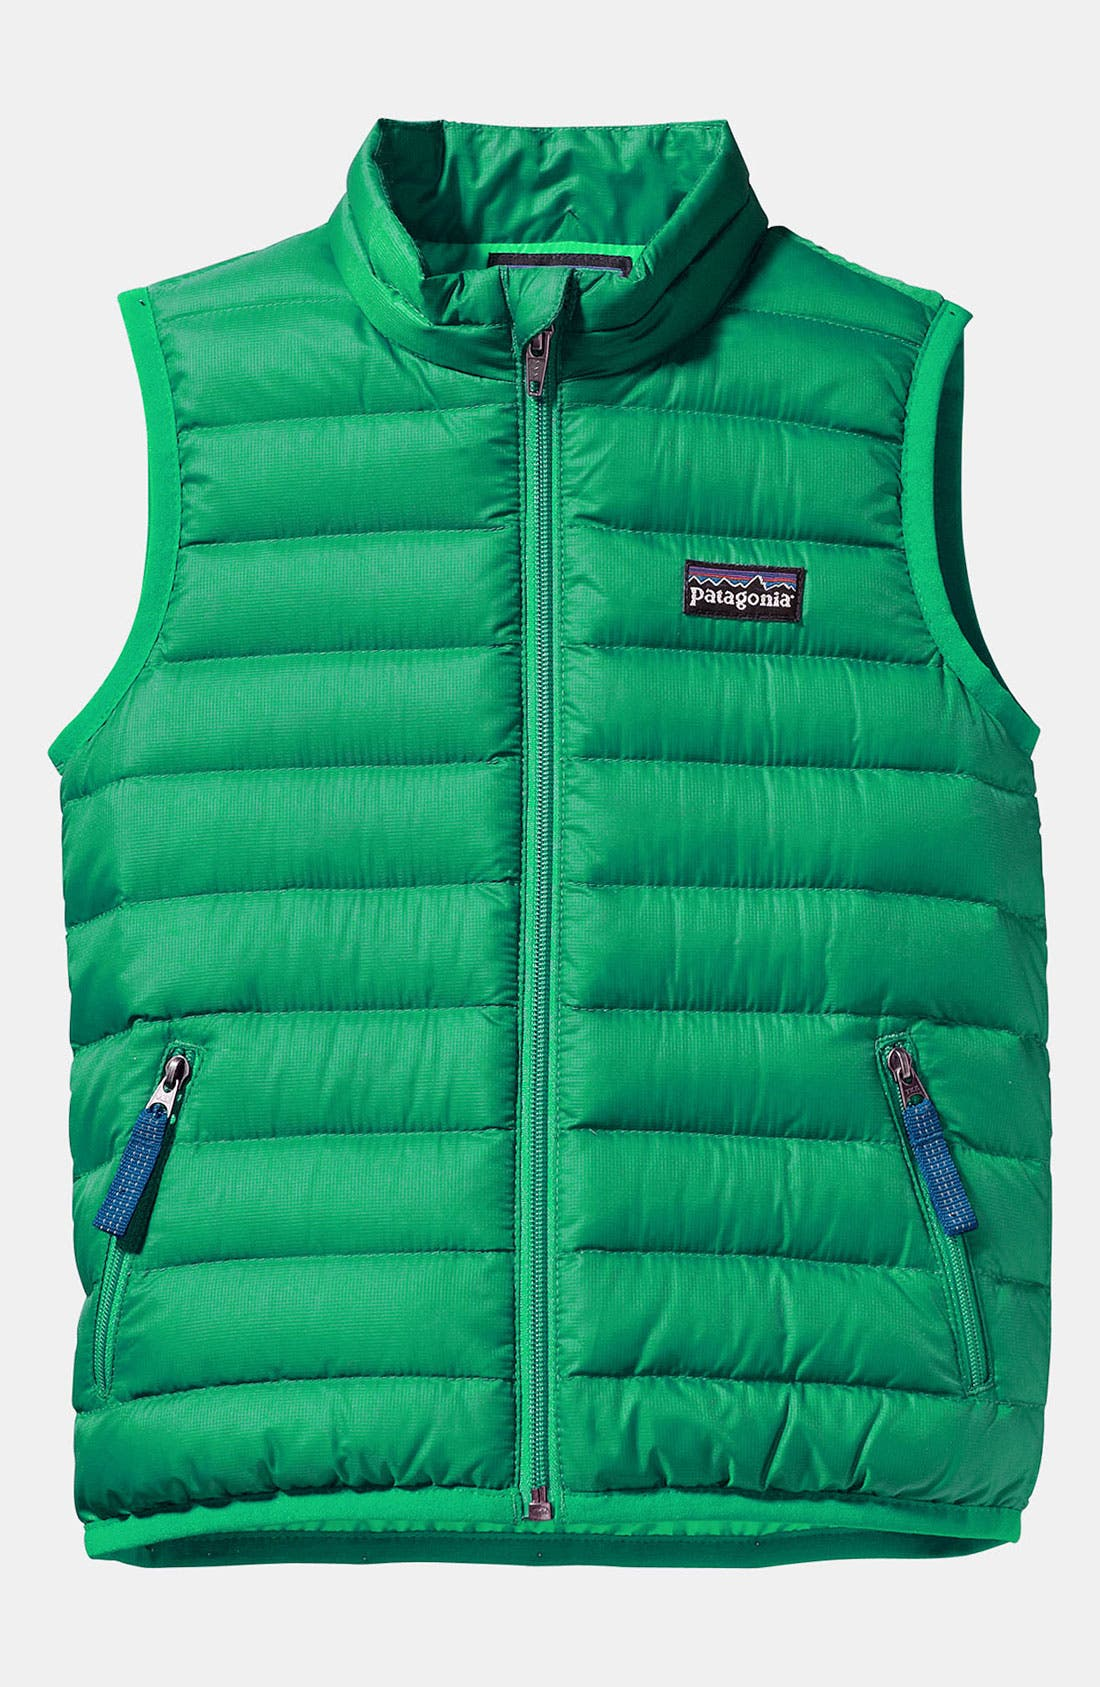 Alternate Image 1 Selected - Patagonia Down Sweater Vest (Toddler Boys)